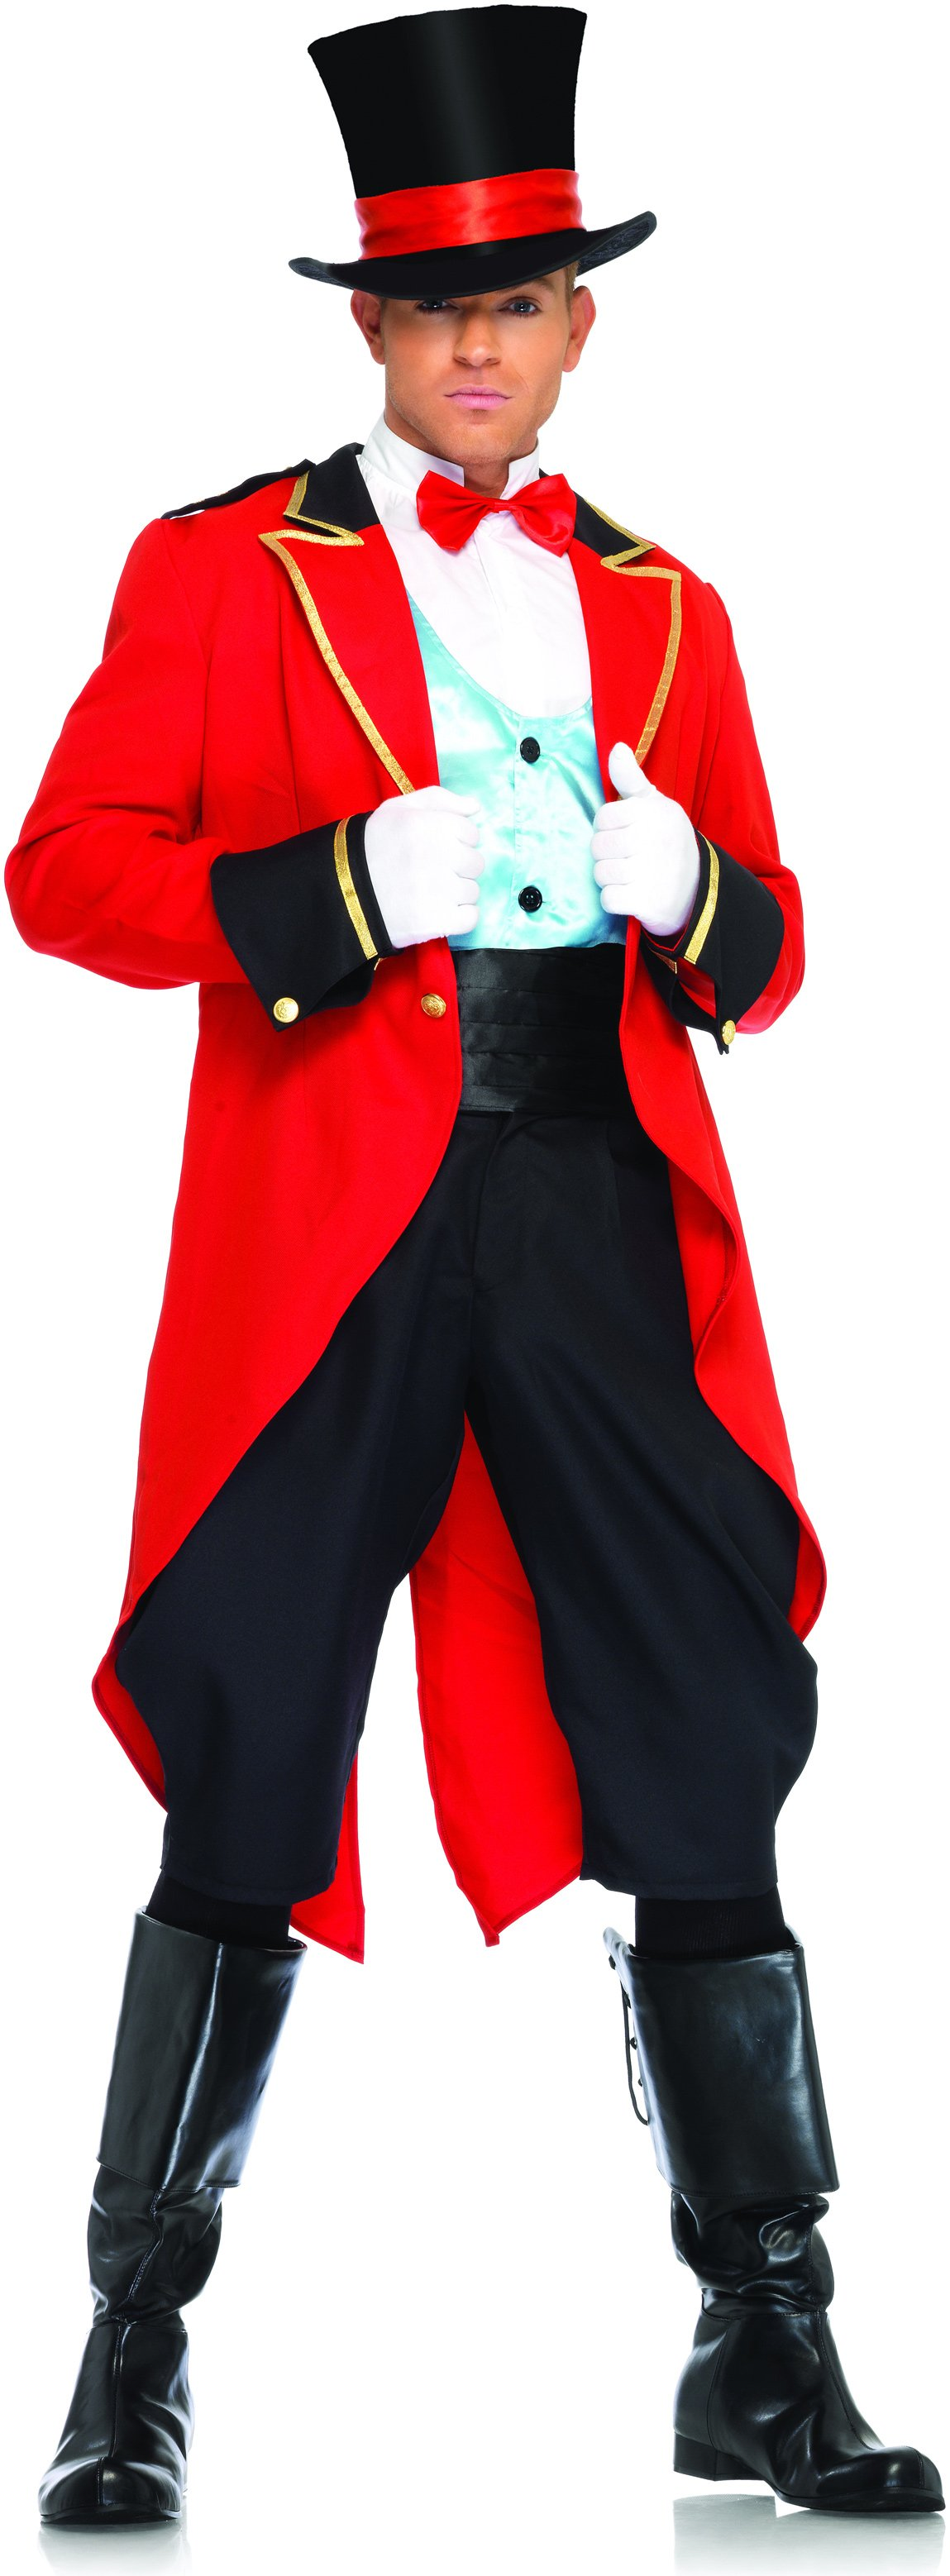 Ring Master Adult Costume